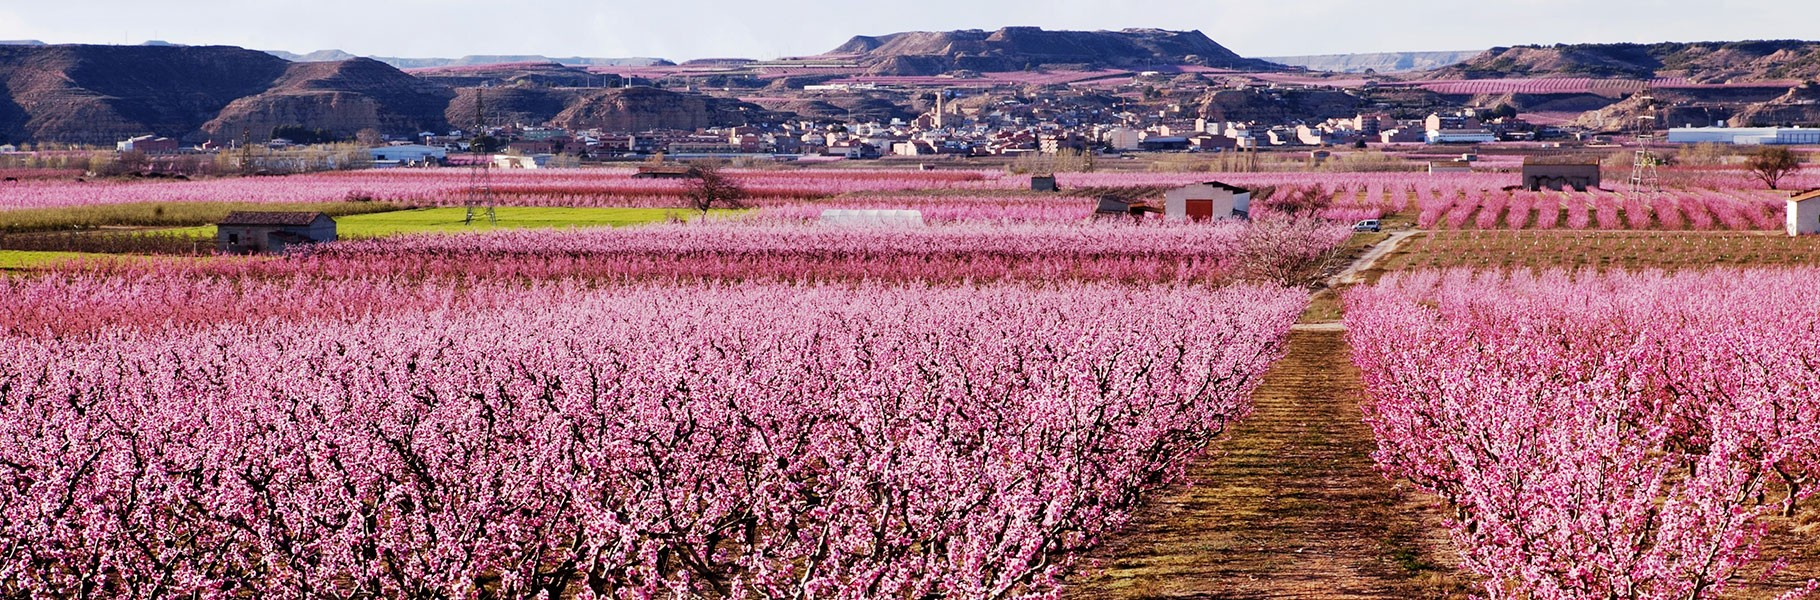 Enjoy the aerial view of the fruit trees blossom